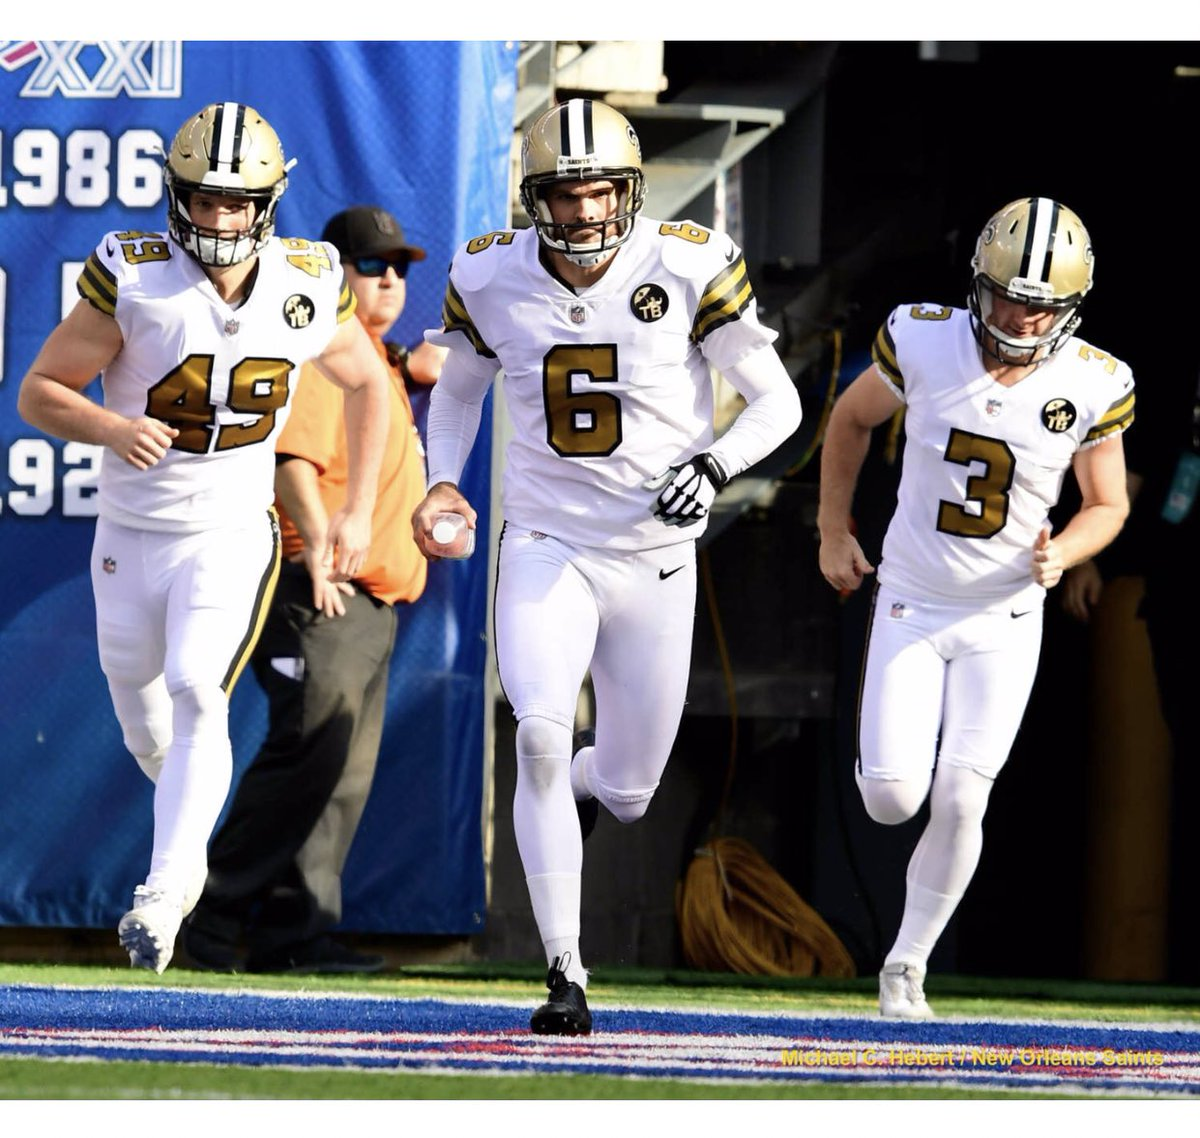 This feeling cannot be put into words. This team is special, and I could not be more proud to be apart of it. Thank you New Orleans and Who Dat Nation for being with us every step of the way and making this year a special one! We'll be back! ⚜️#WHODAT